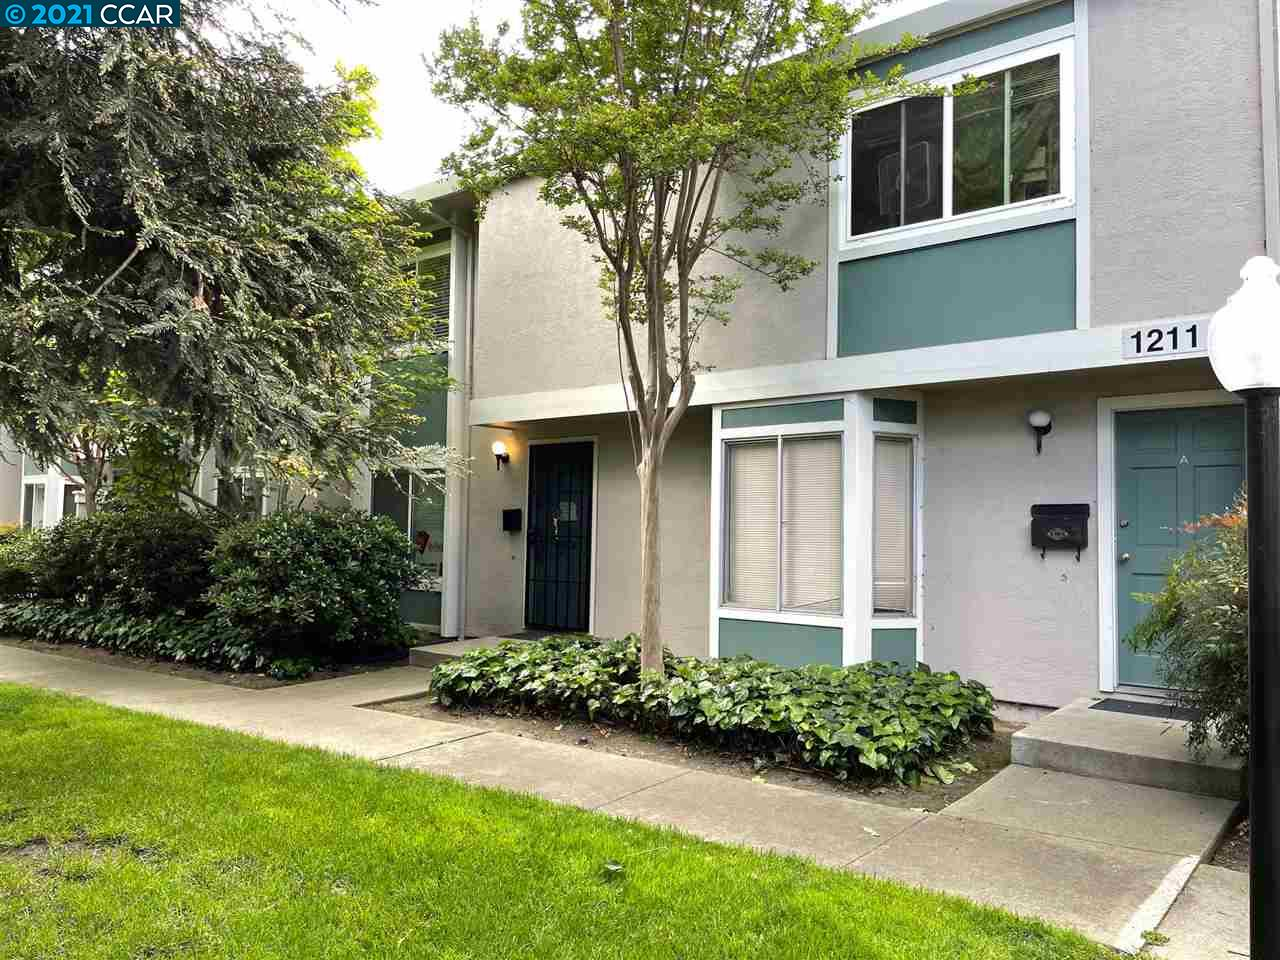 Beautiful 2 bedrooms and 1.5 baths townhome available next to common area and few steps to gorgeous pool. Great location close to freeway, Bart Station, Shopping and much more. Granite counter tops, stainless steel refrigerator and white kitchen cabinets, Wooden floor, nice patio,Laundry in unit and other . Don't miss it!!!